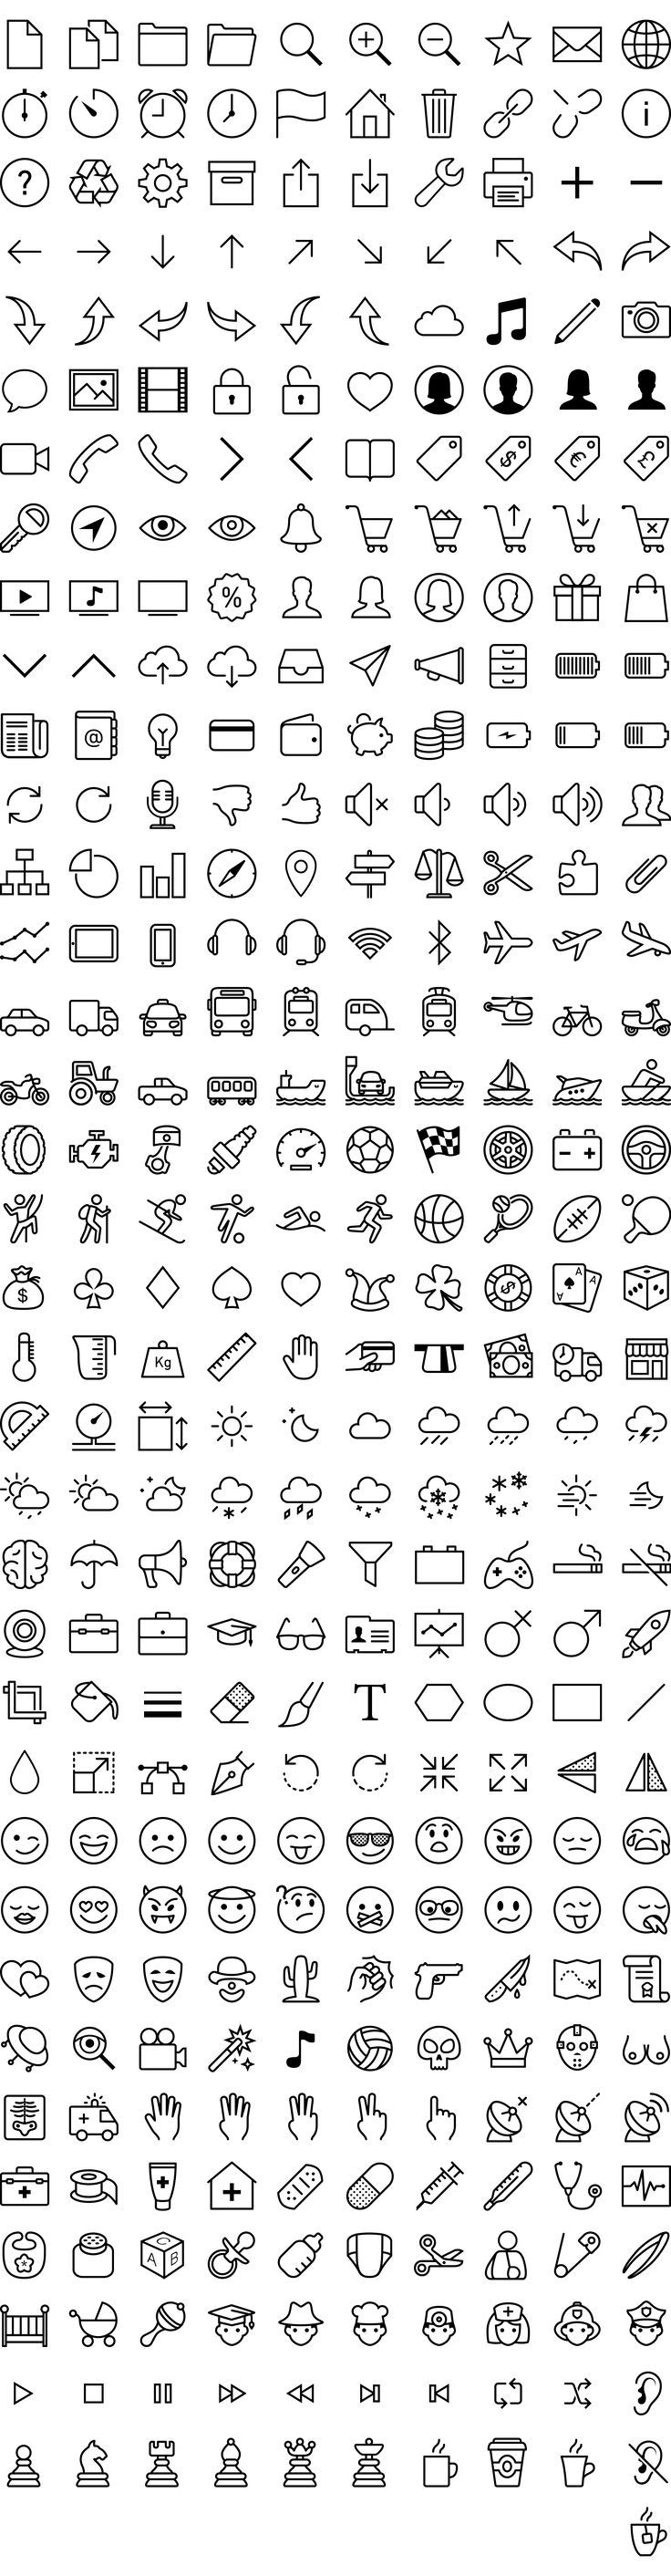 Download iOS 7 icons in vector